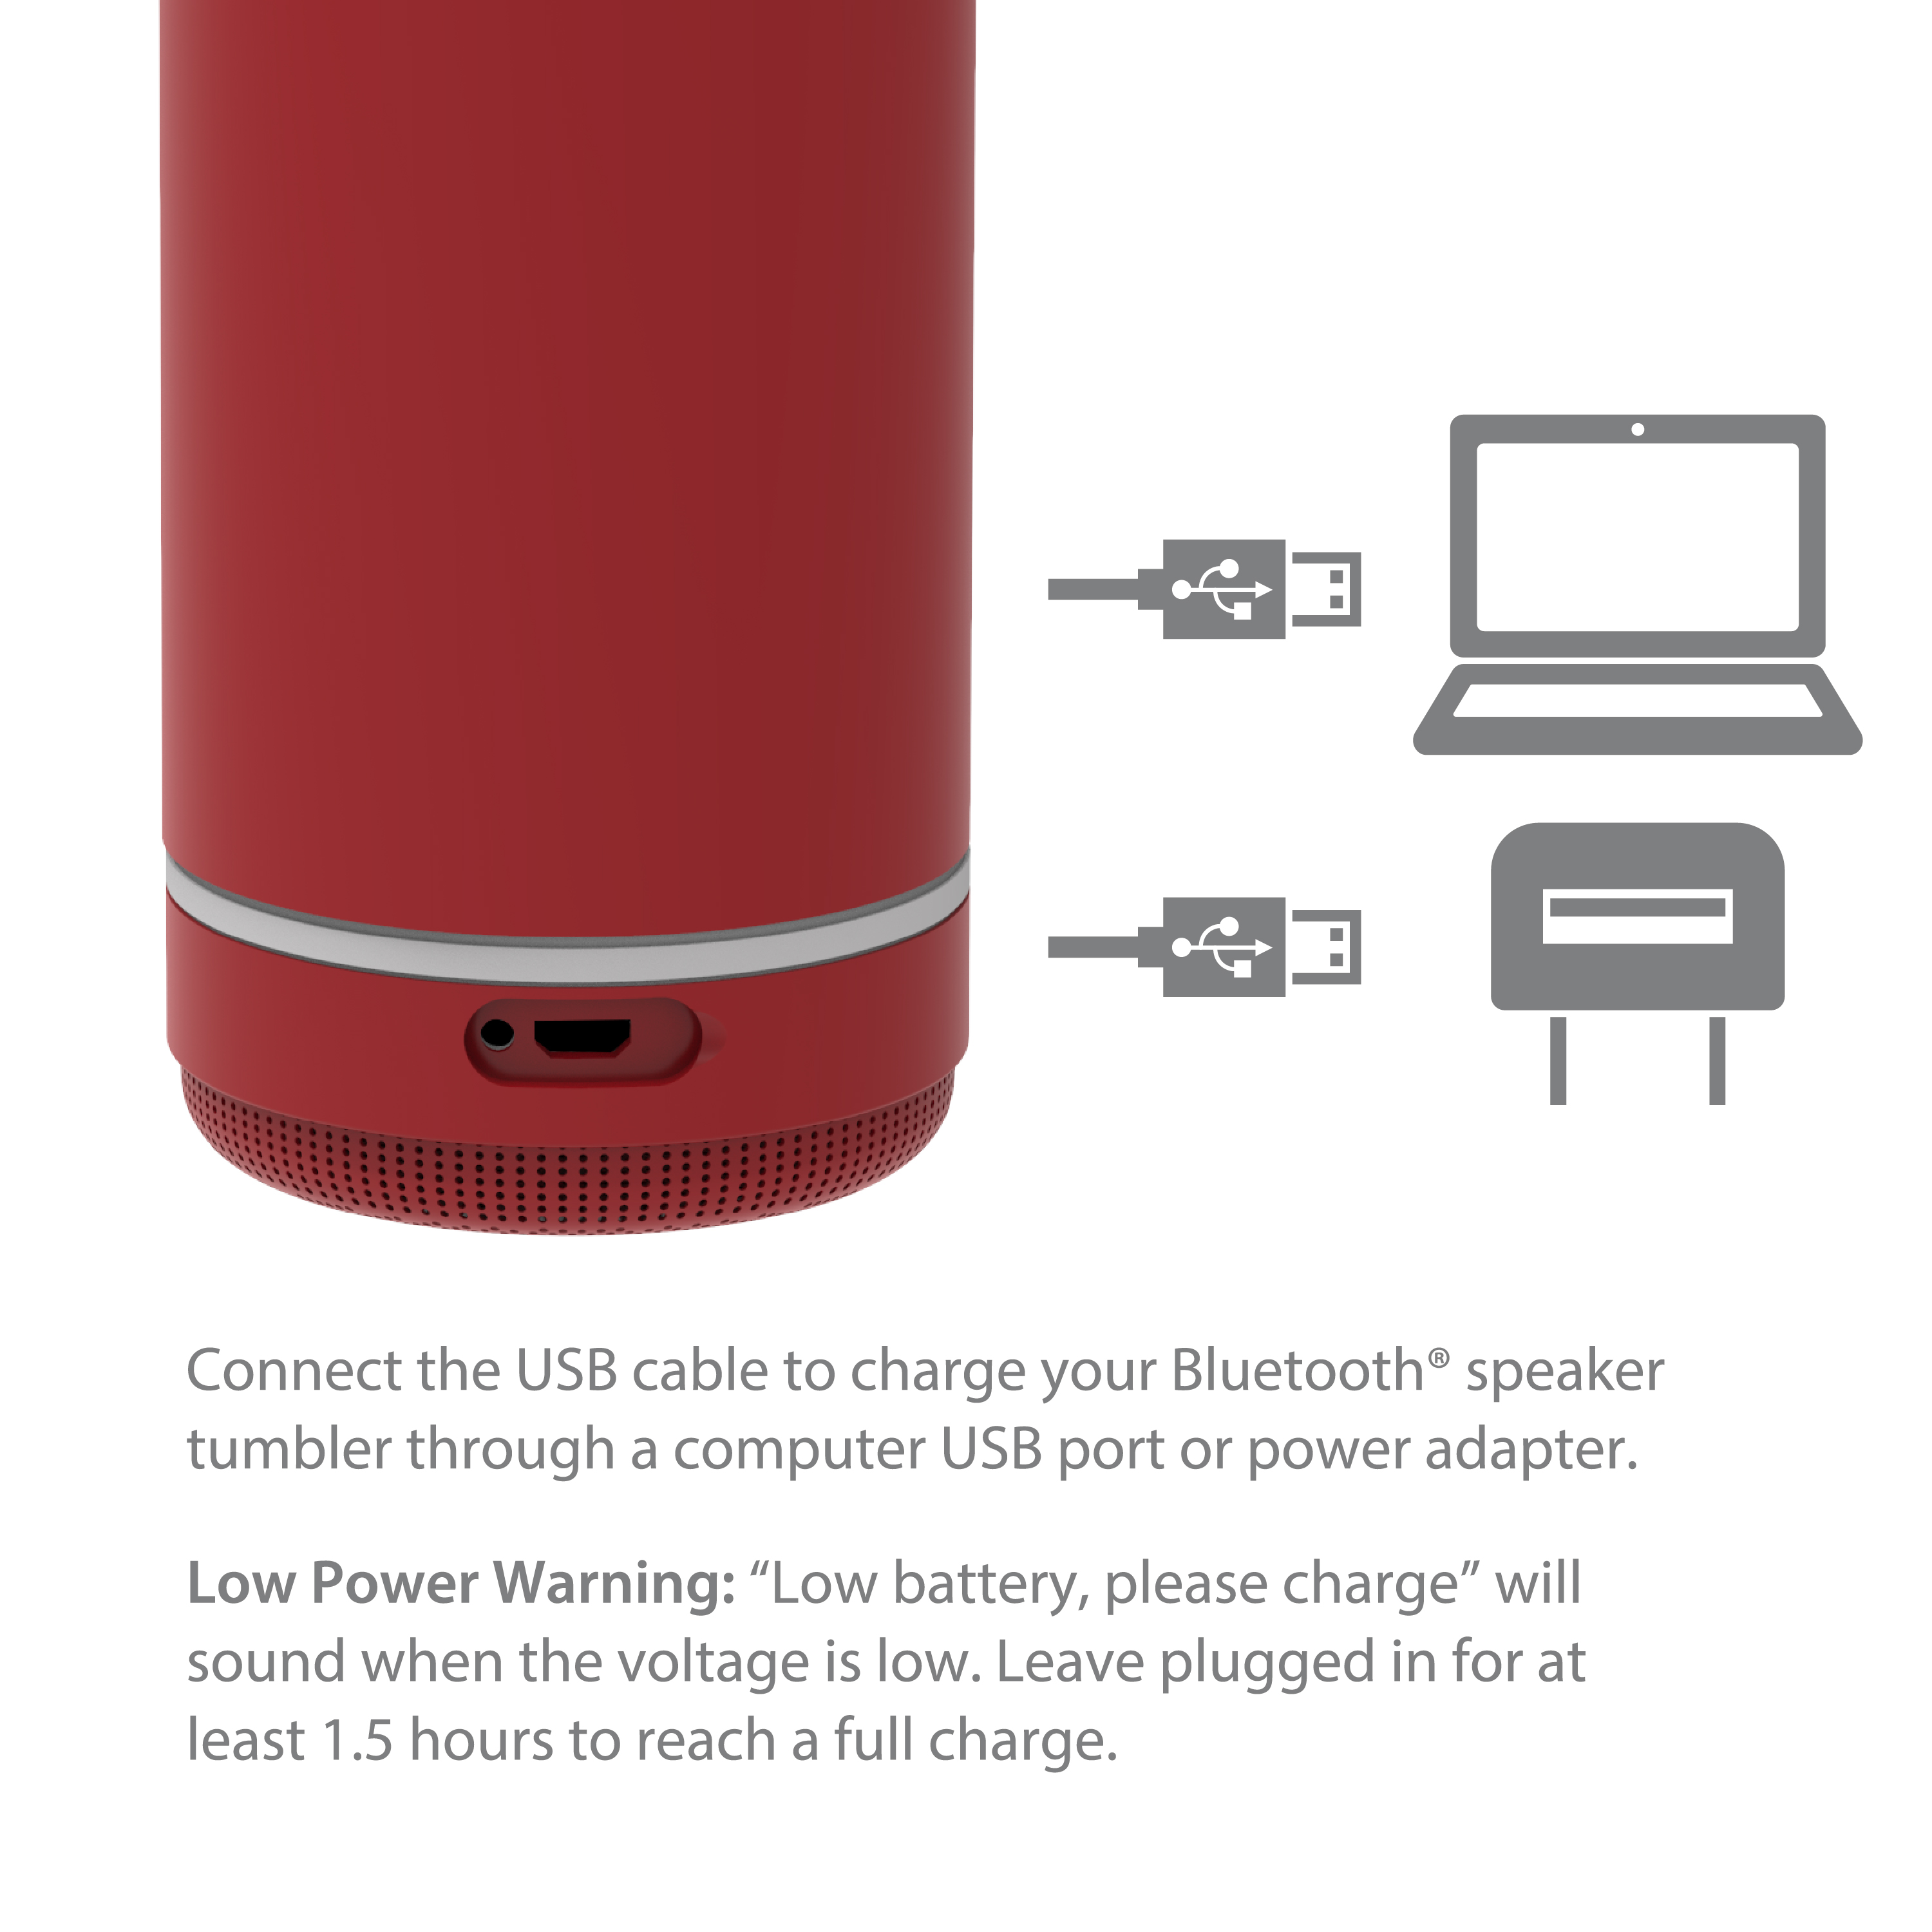 Zak Play 17.5 ounce Stainless Steel Tumbler with Bluetooth Speaker, Red slideshow image 7